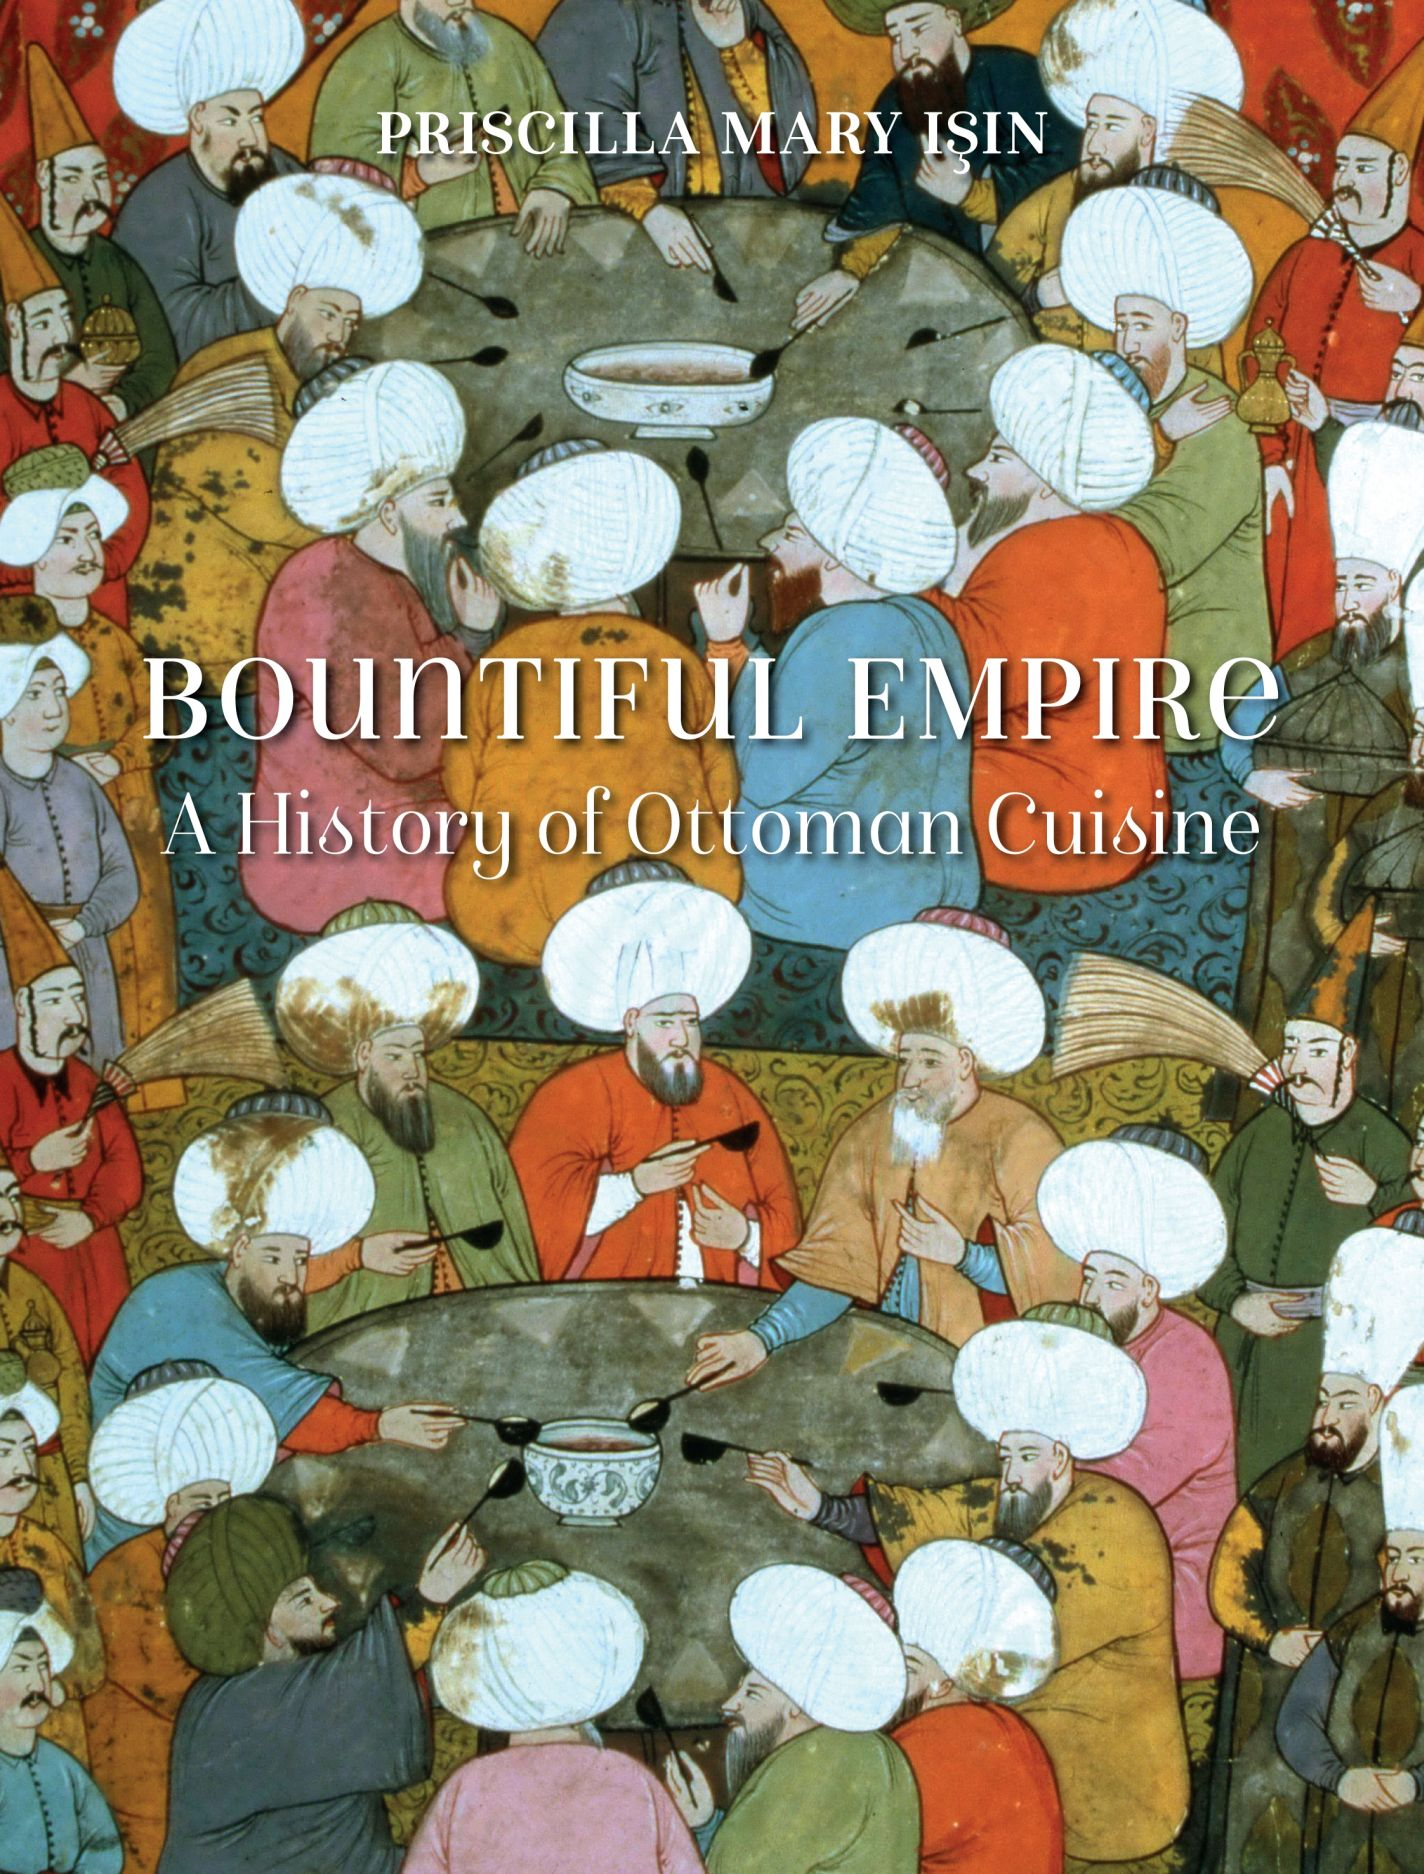 Bountiful Empire: A History of Ottoman Cuisine